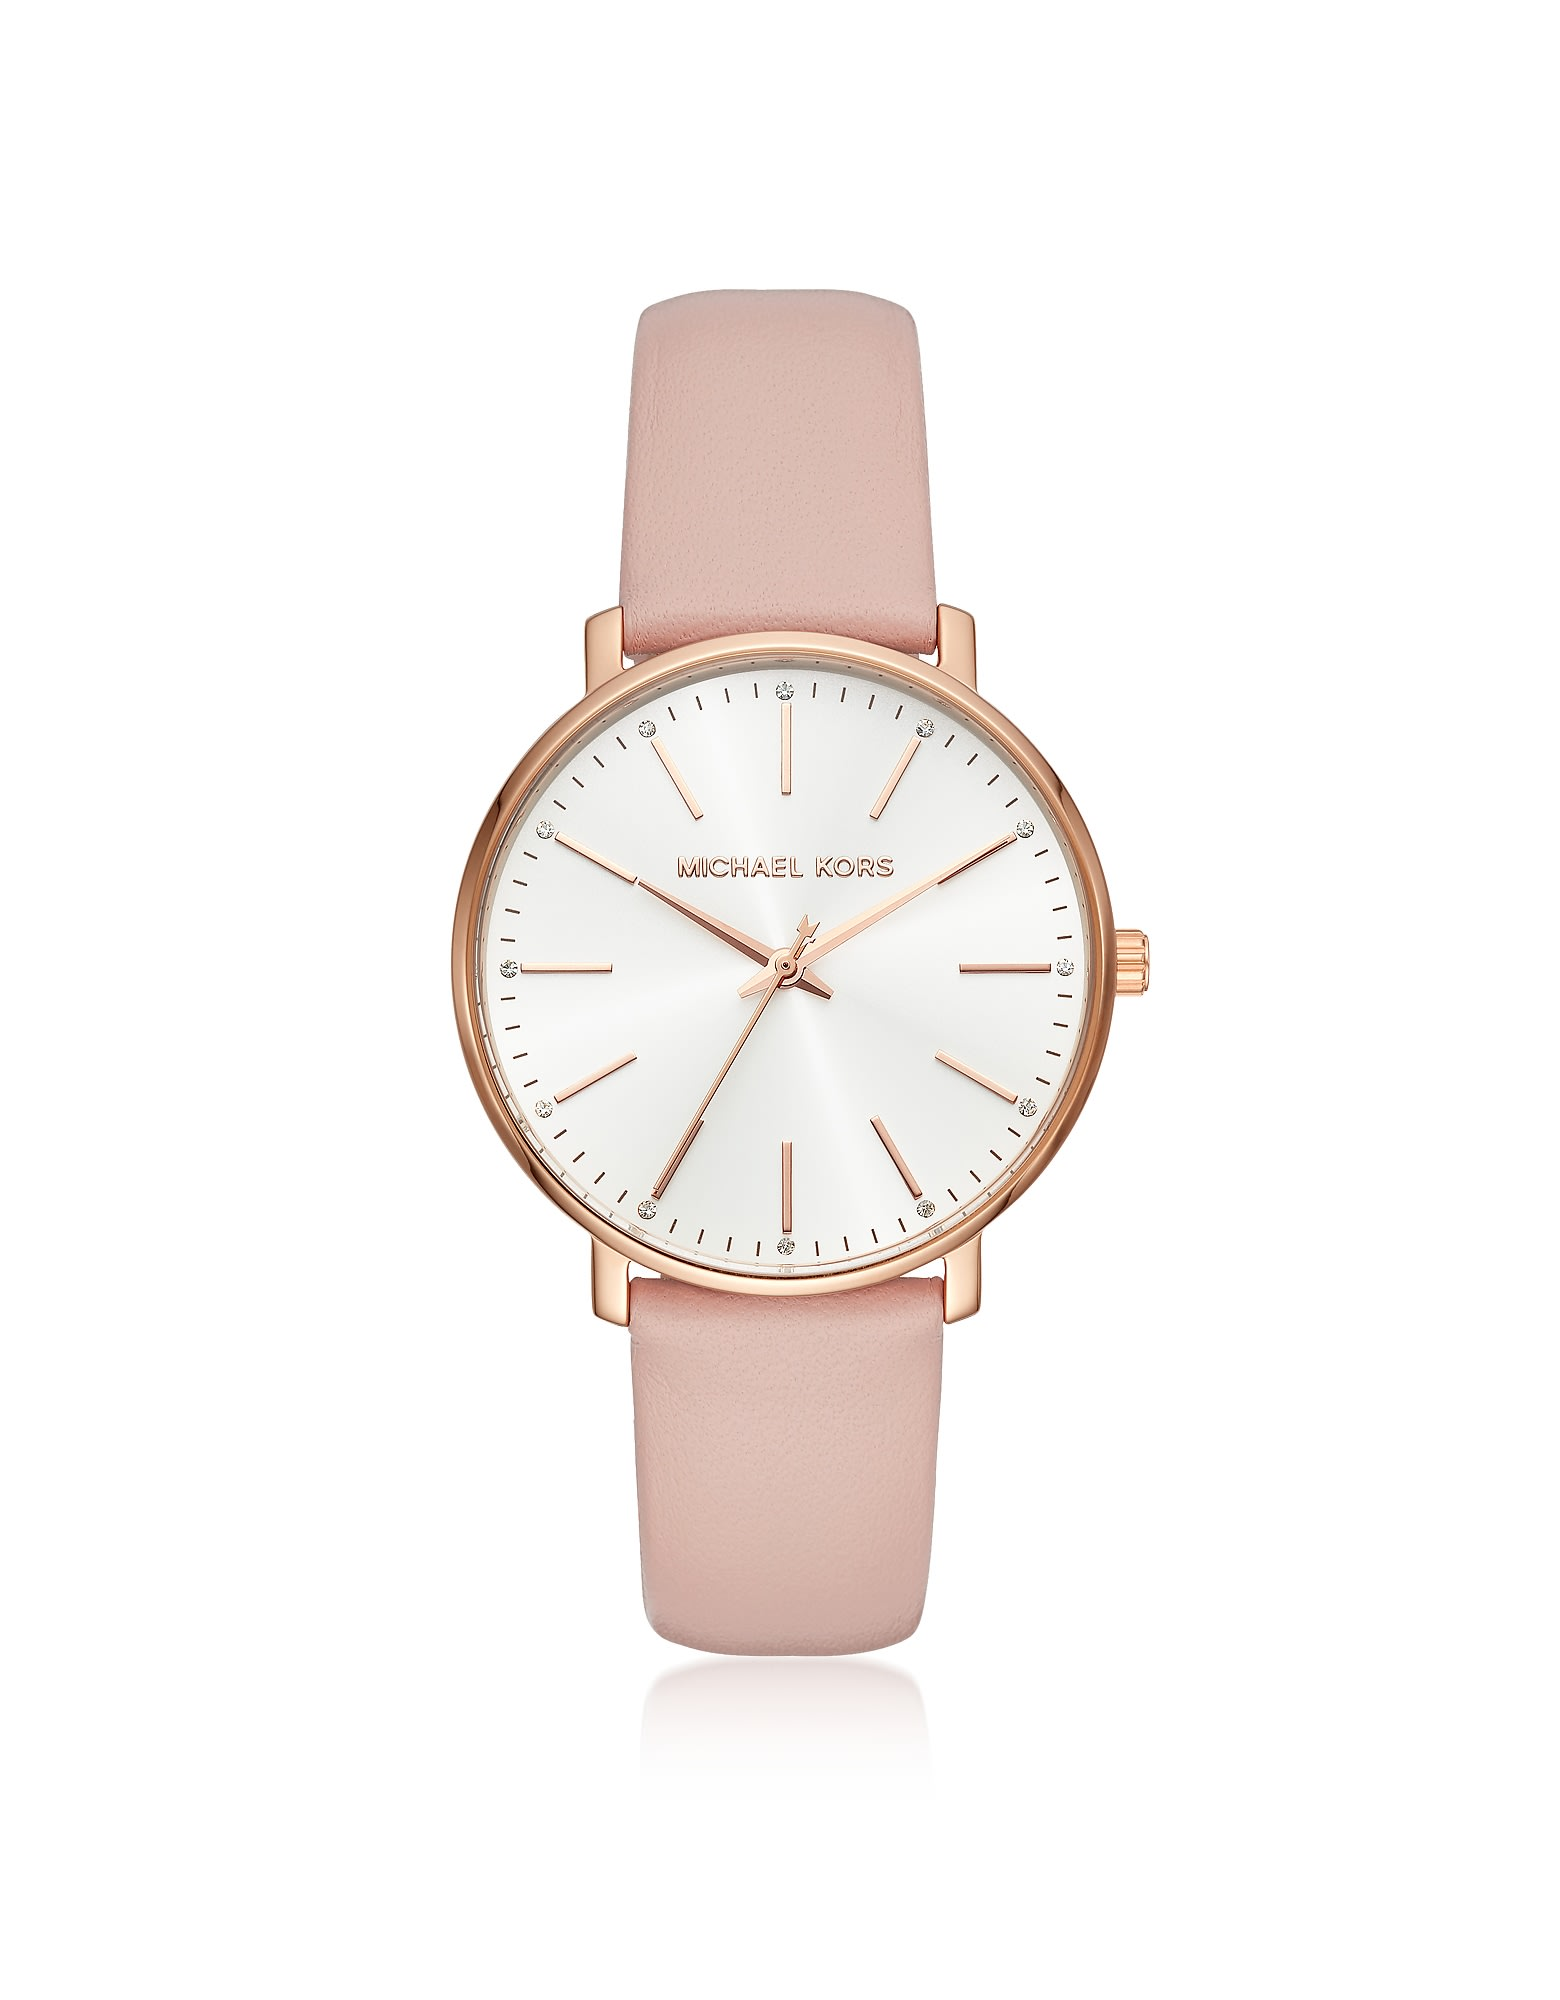 Michael Kors WOMENS ROSE GOLD-TONE AND BLUSH LEATHER PYPER WATCH